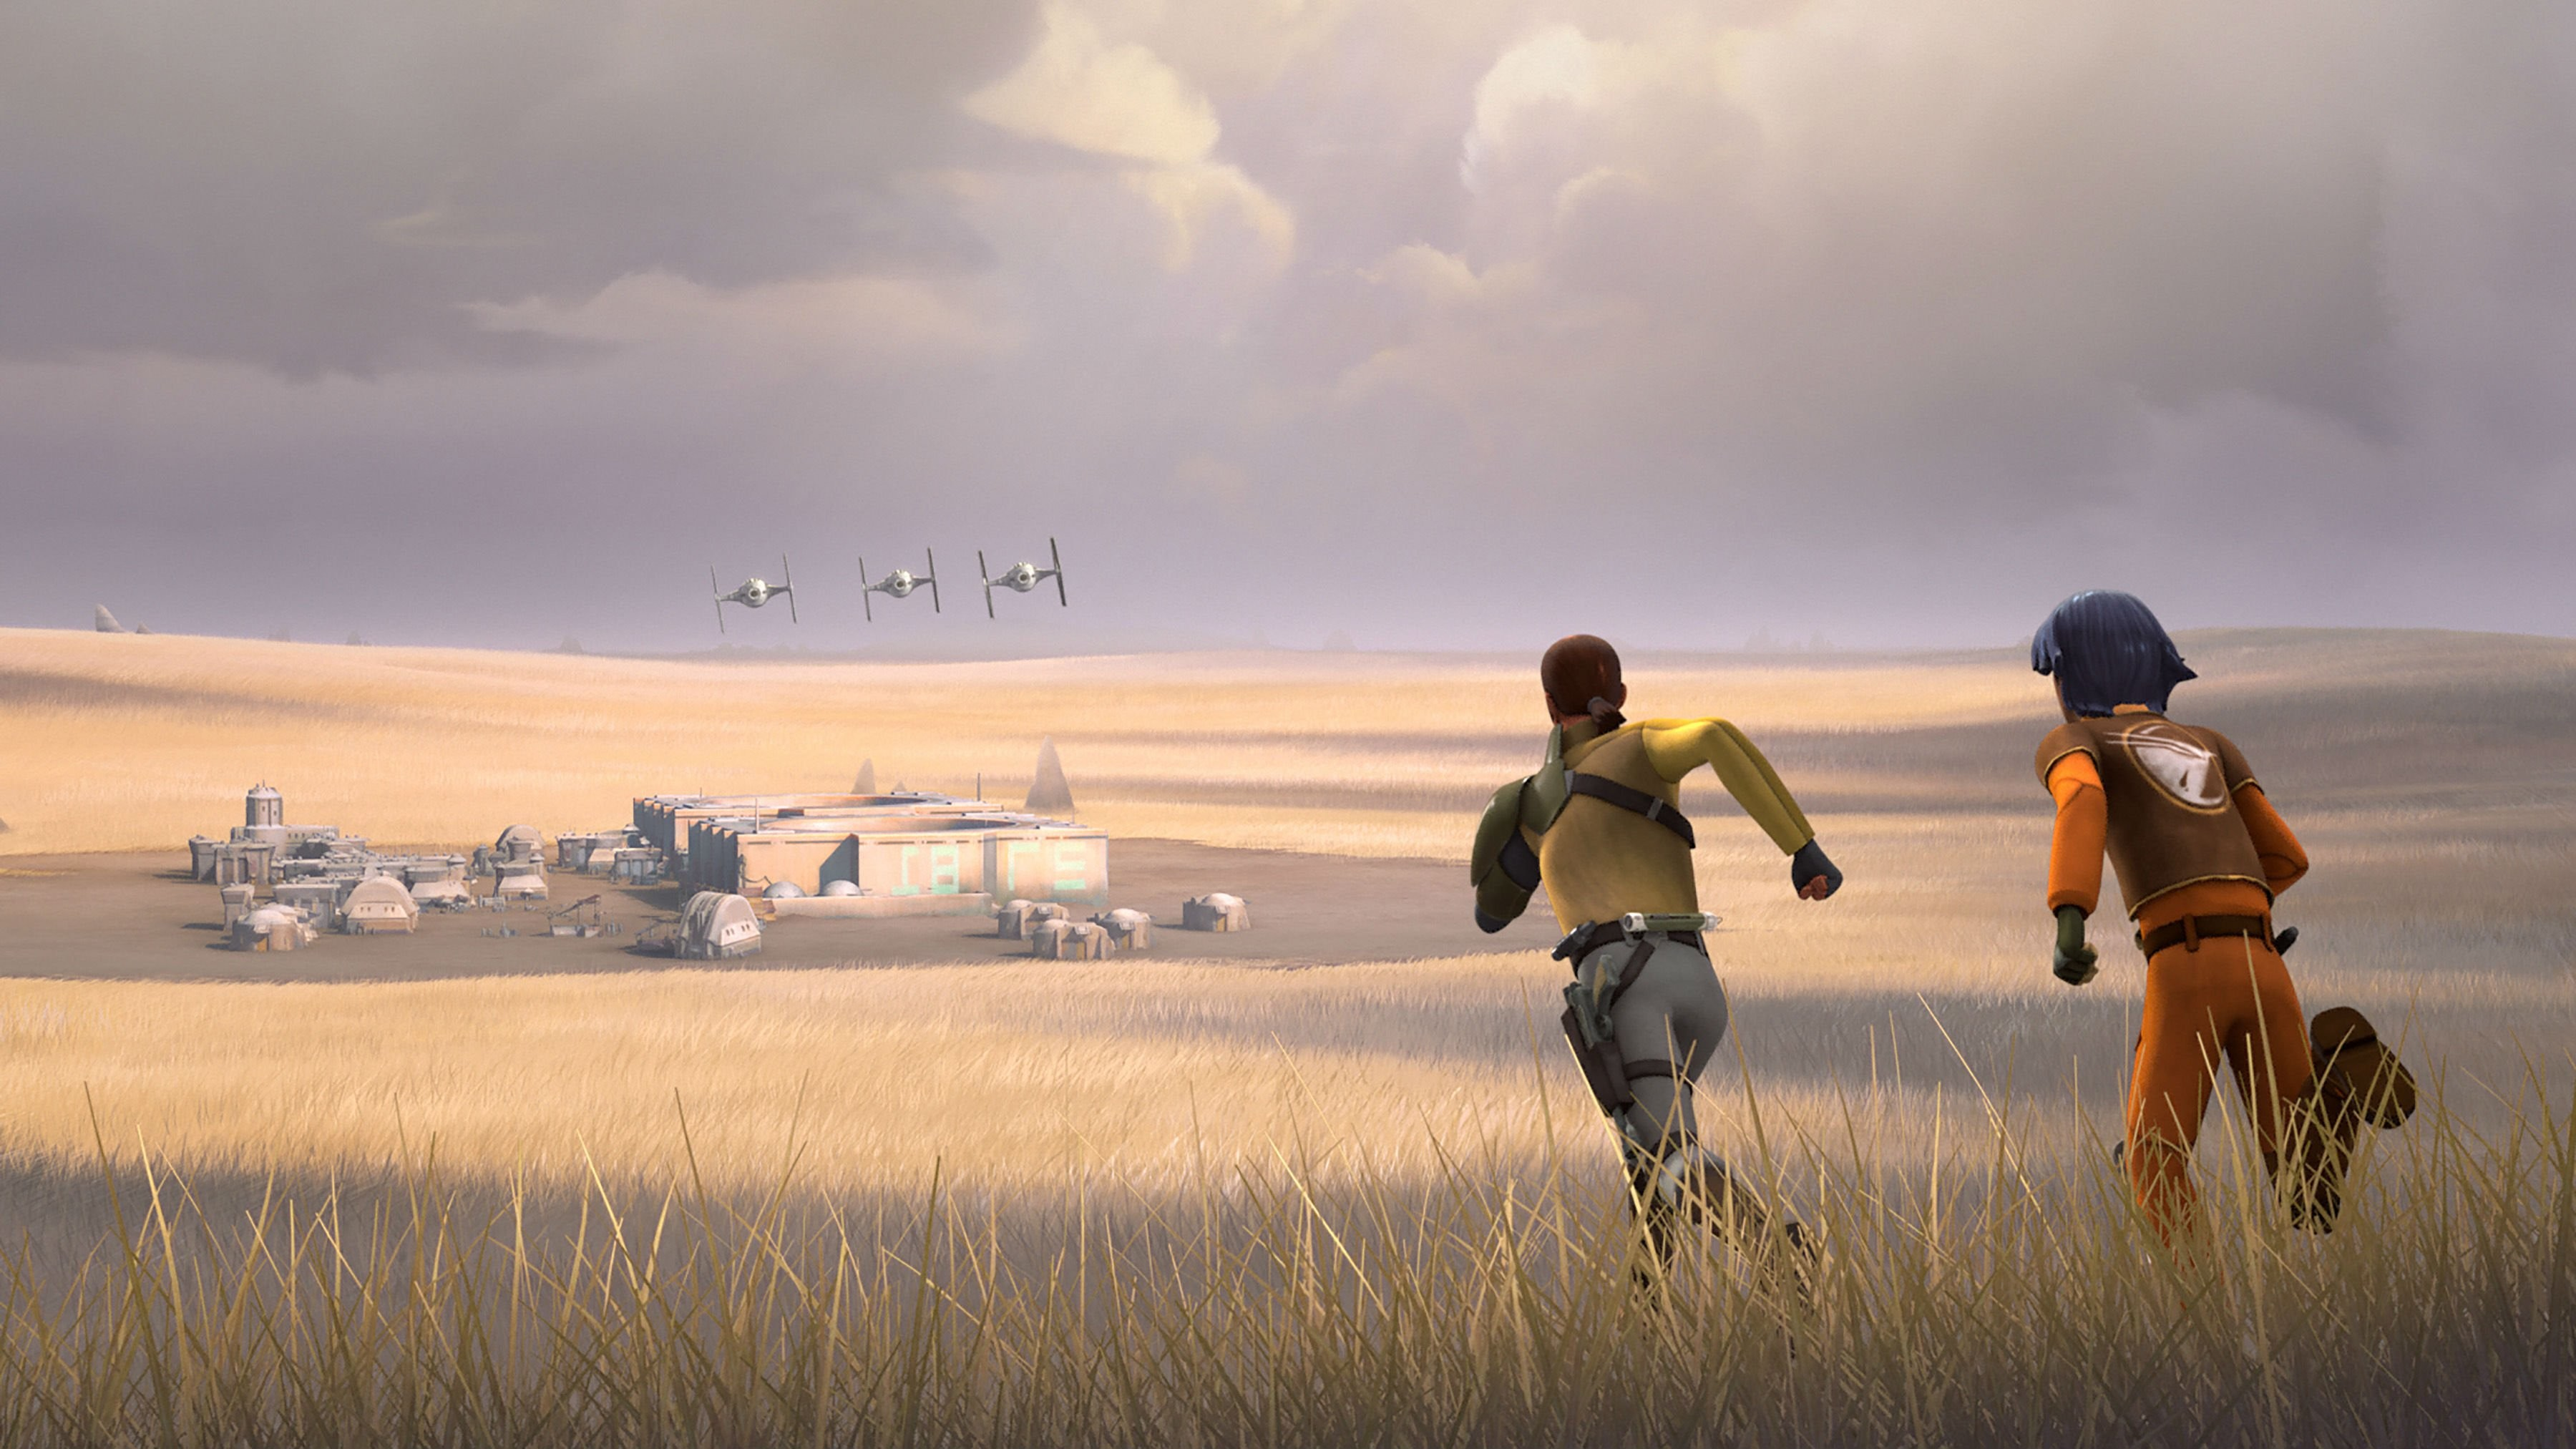 STAR WARS REBELS animated series sci-fi disney action adventure wallpaper |  | 533696 | WallpaperUP